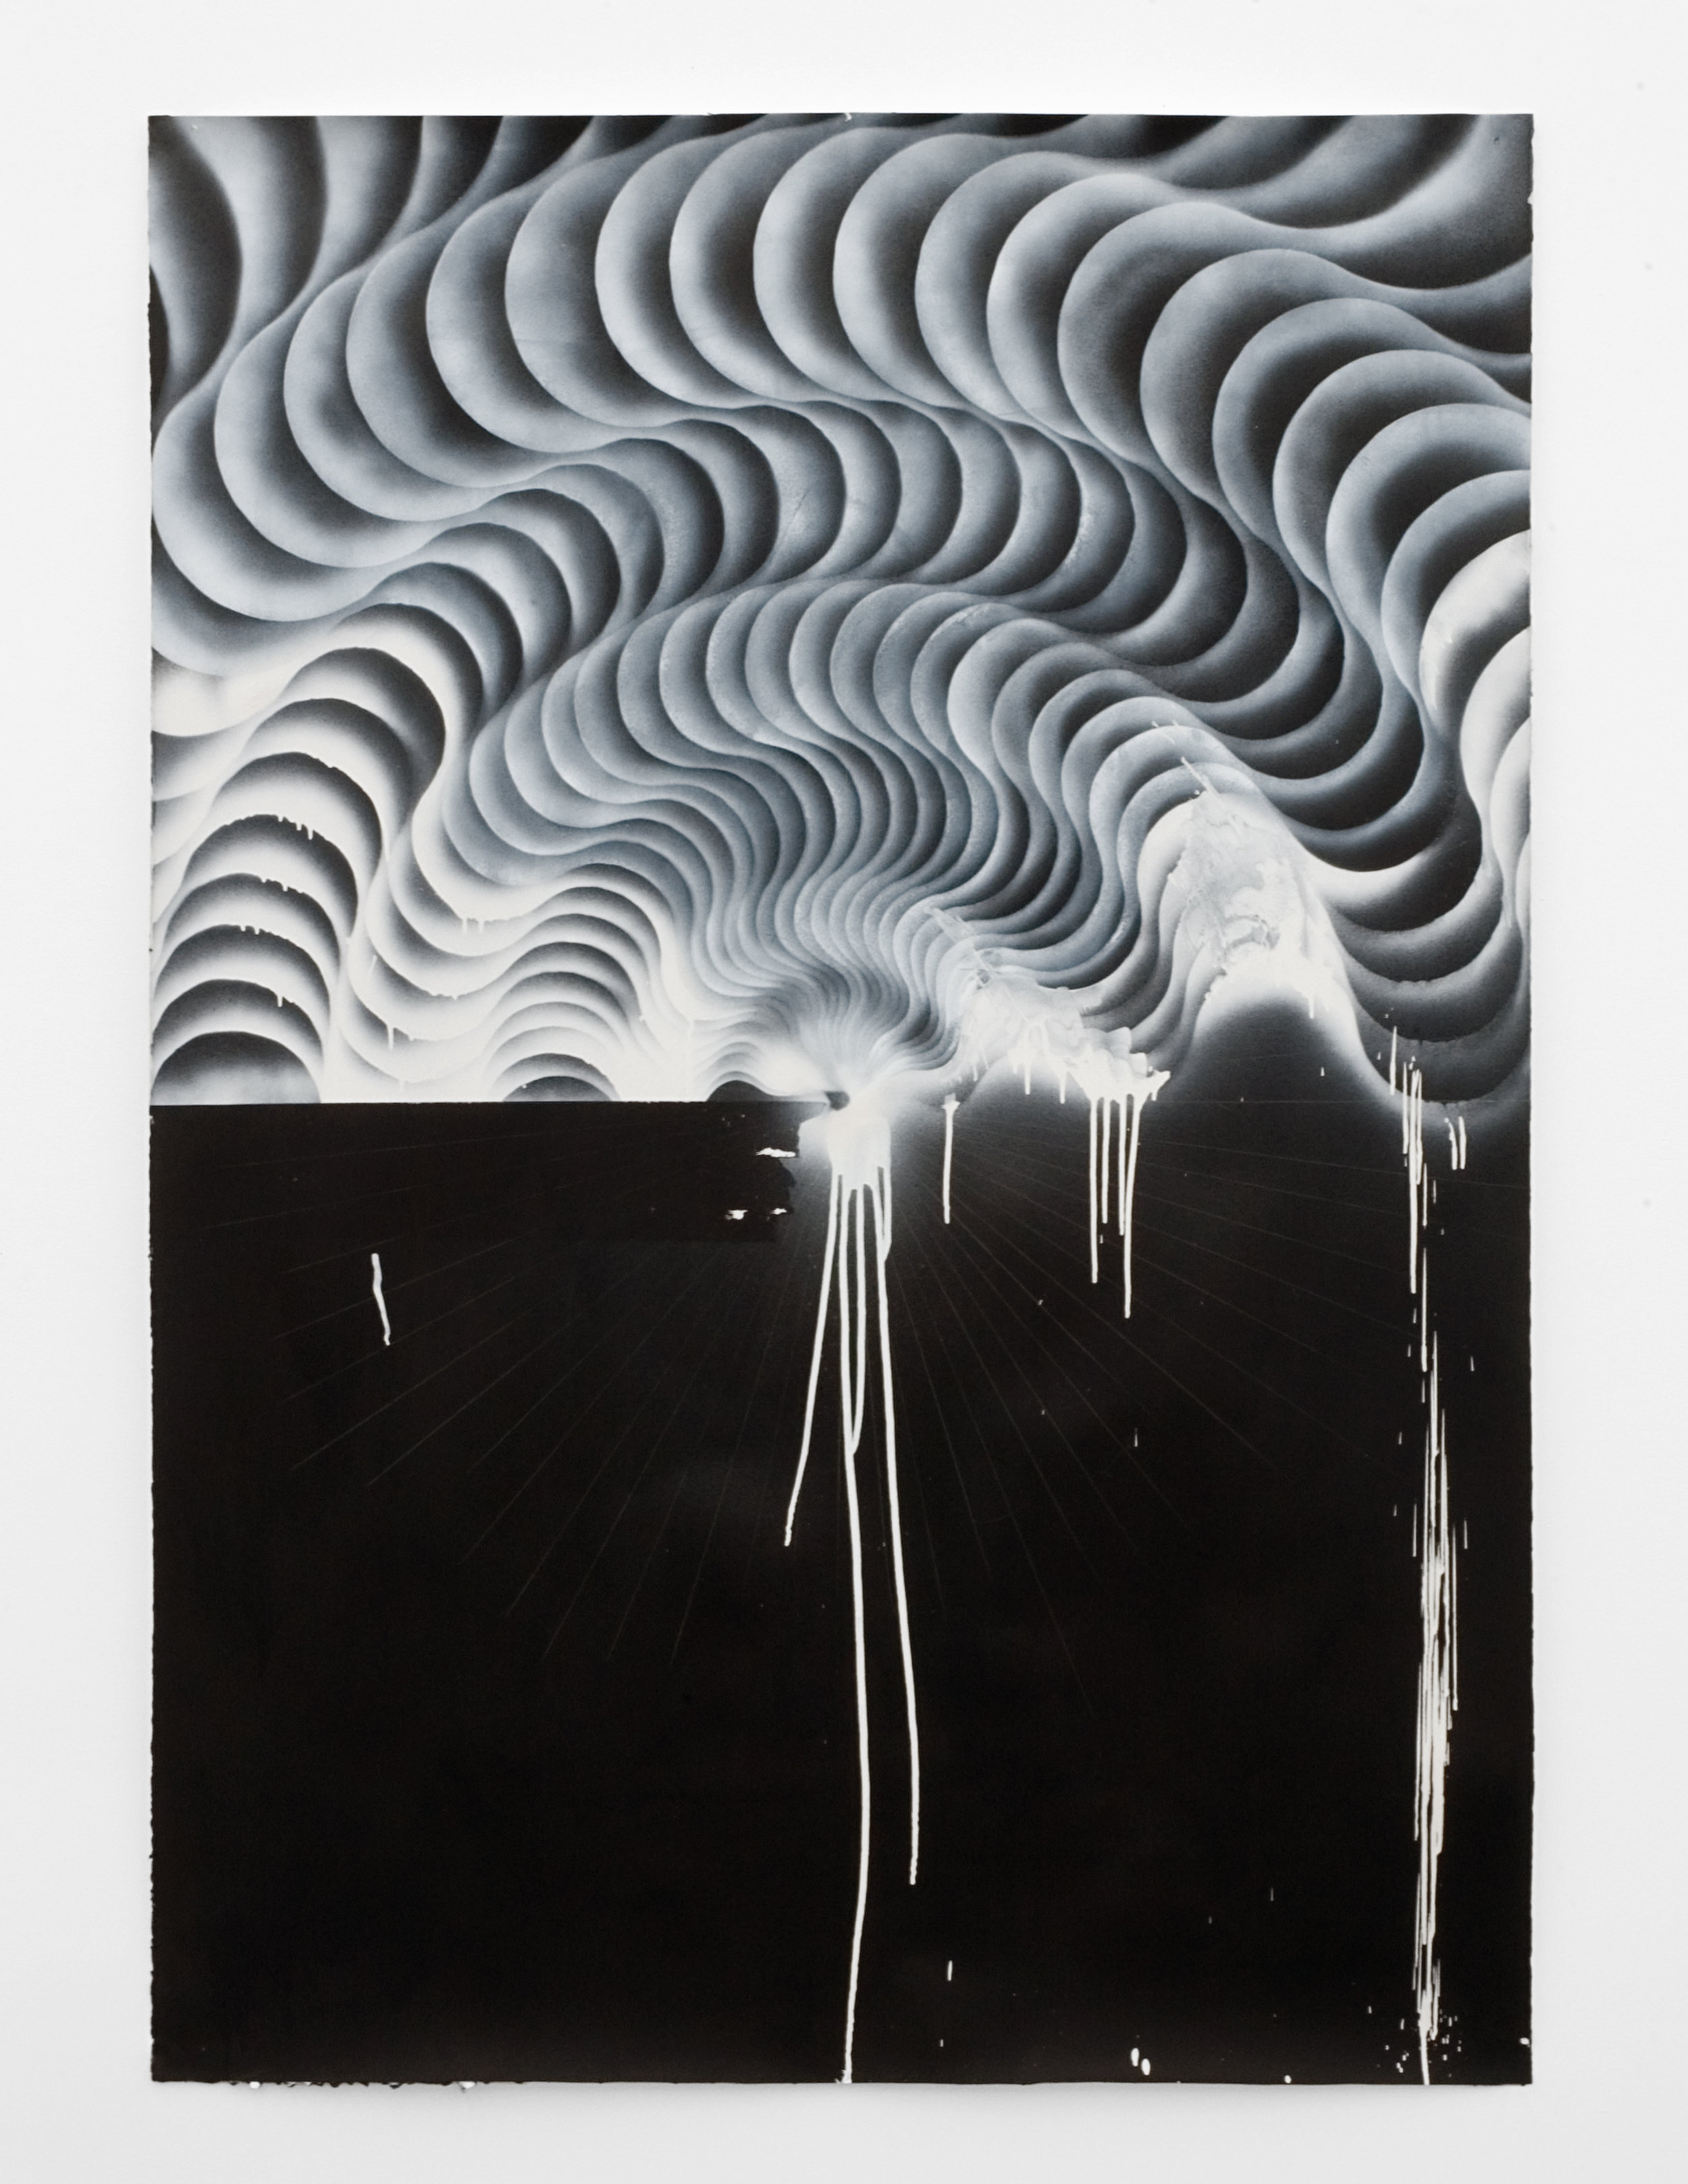 Vortex #3, 2008 india ink, colored pencil and spray paint on paper 167 x 122,5 cm - 65 3/4 x 48 1/4 inches